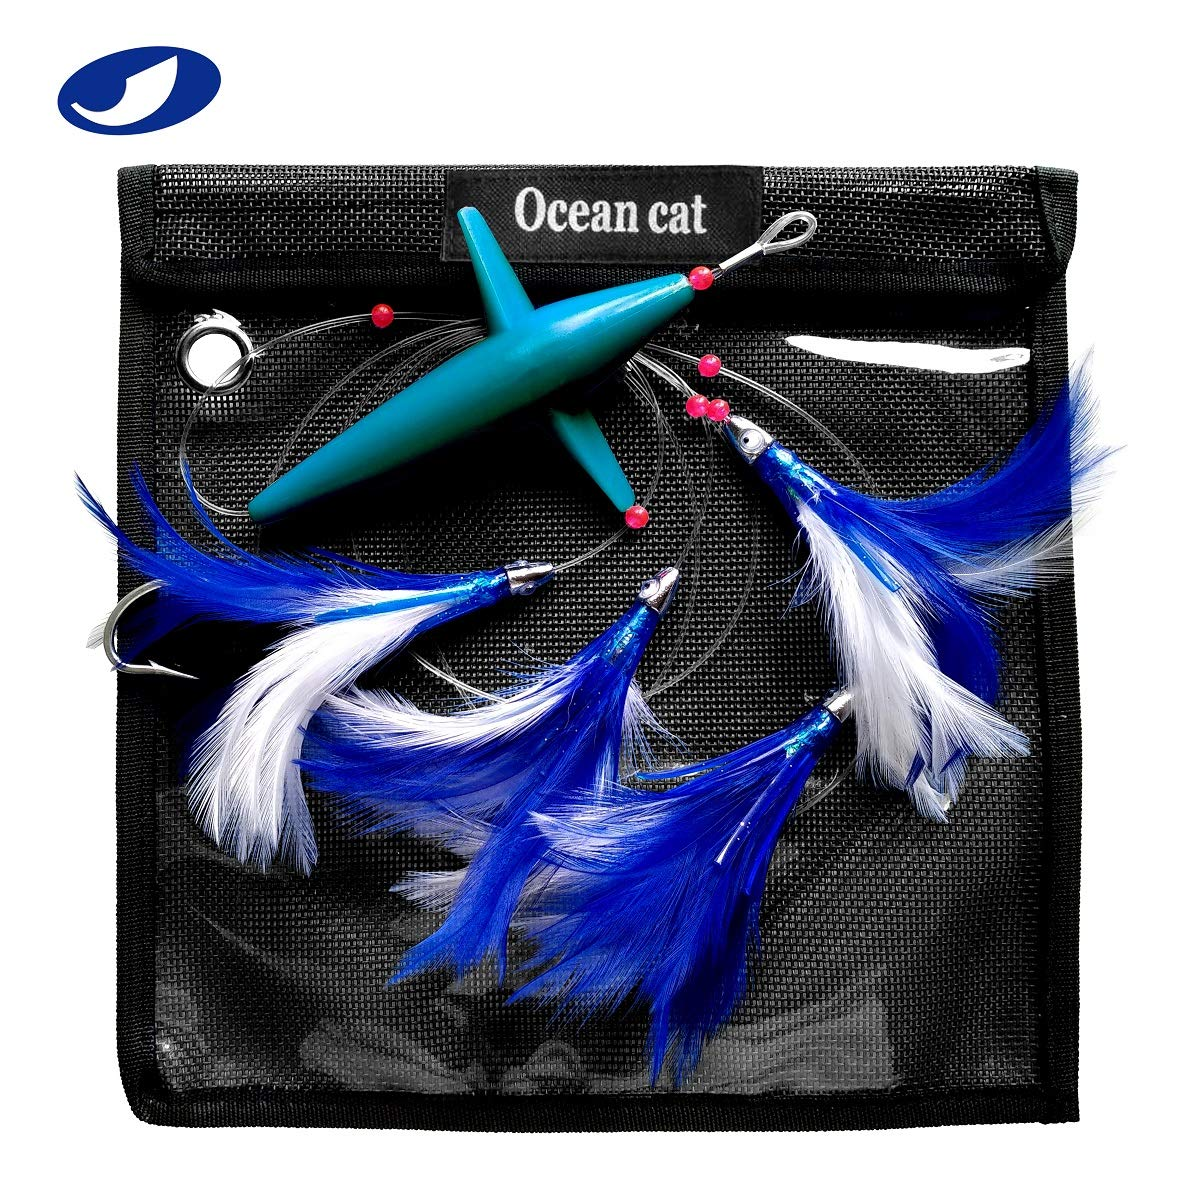 OCEAN CAT 5 Pcs/Set 5 inch Daisy Chain Trolling Lures with Brid Feather Saltwater Offshore Big Game Trolling Lure Bag for Marlin Tuna Mahi Dolphin Durado Wahoo Free Mesh by OCEAN CAT